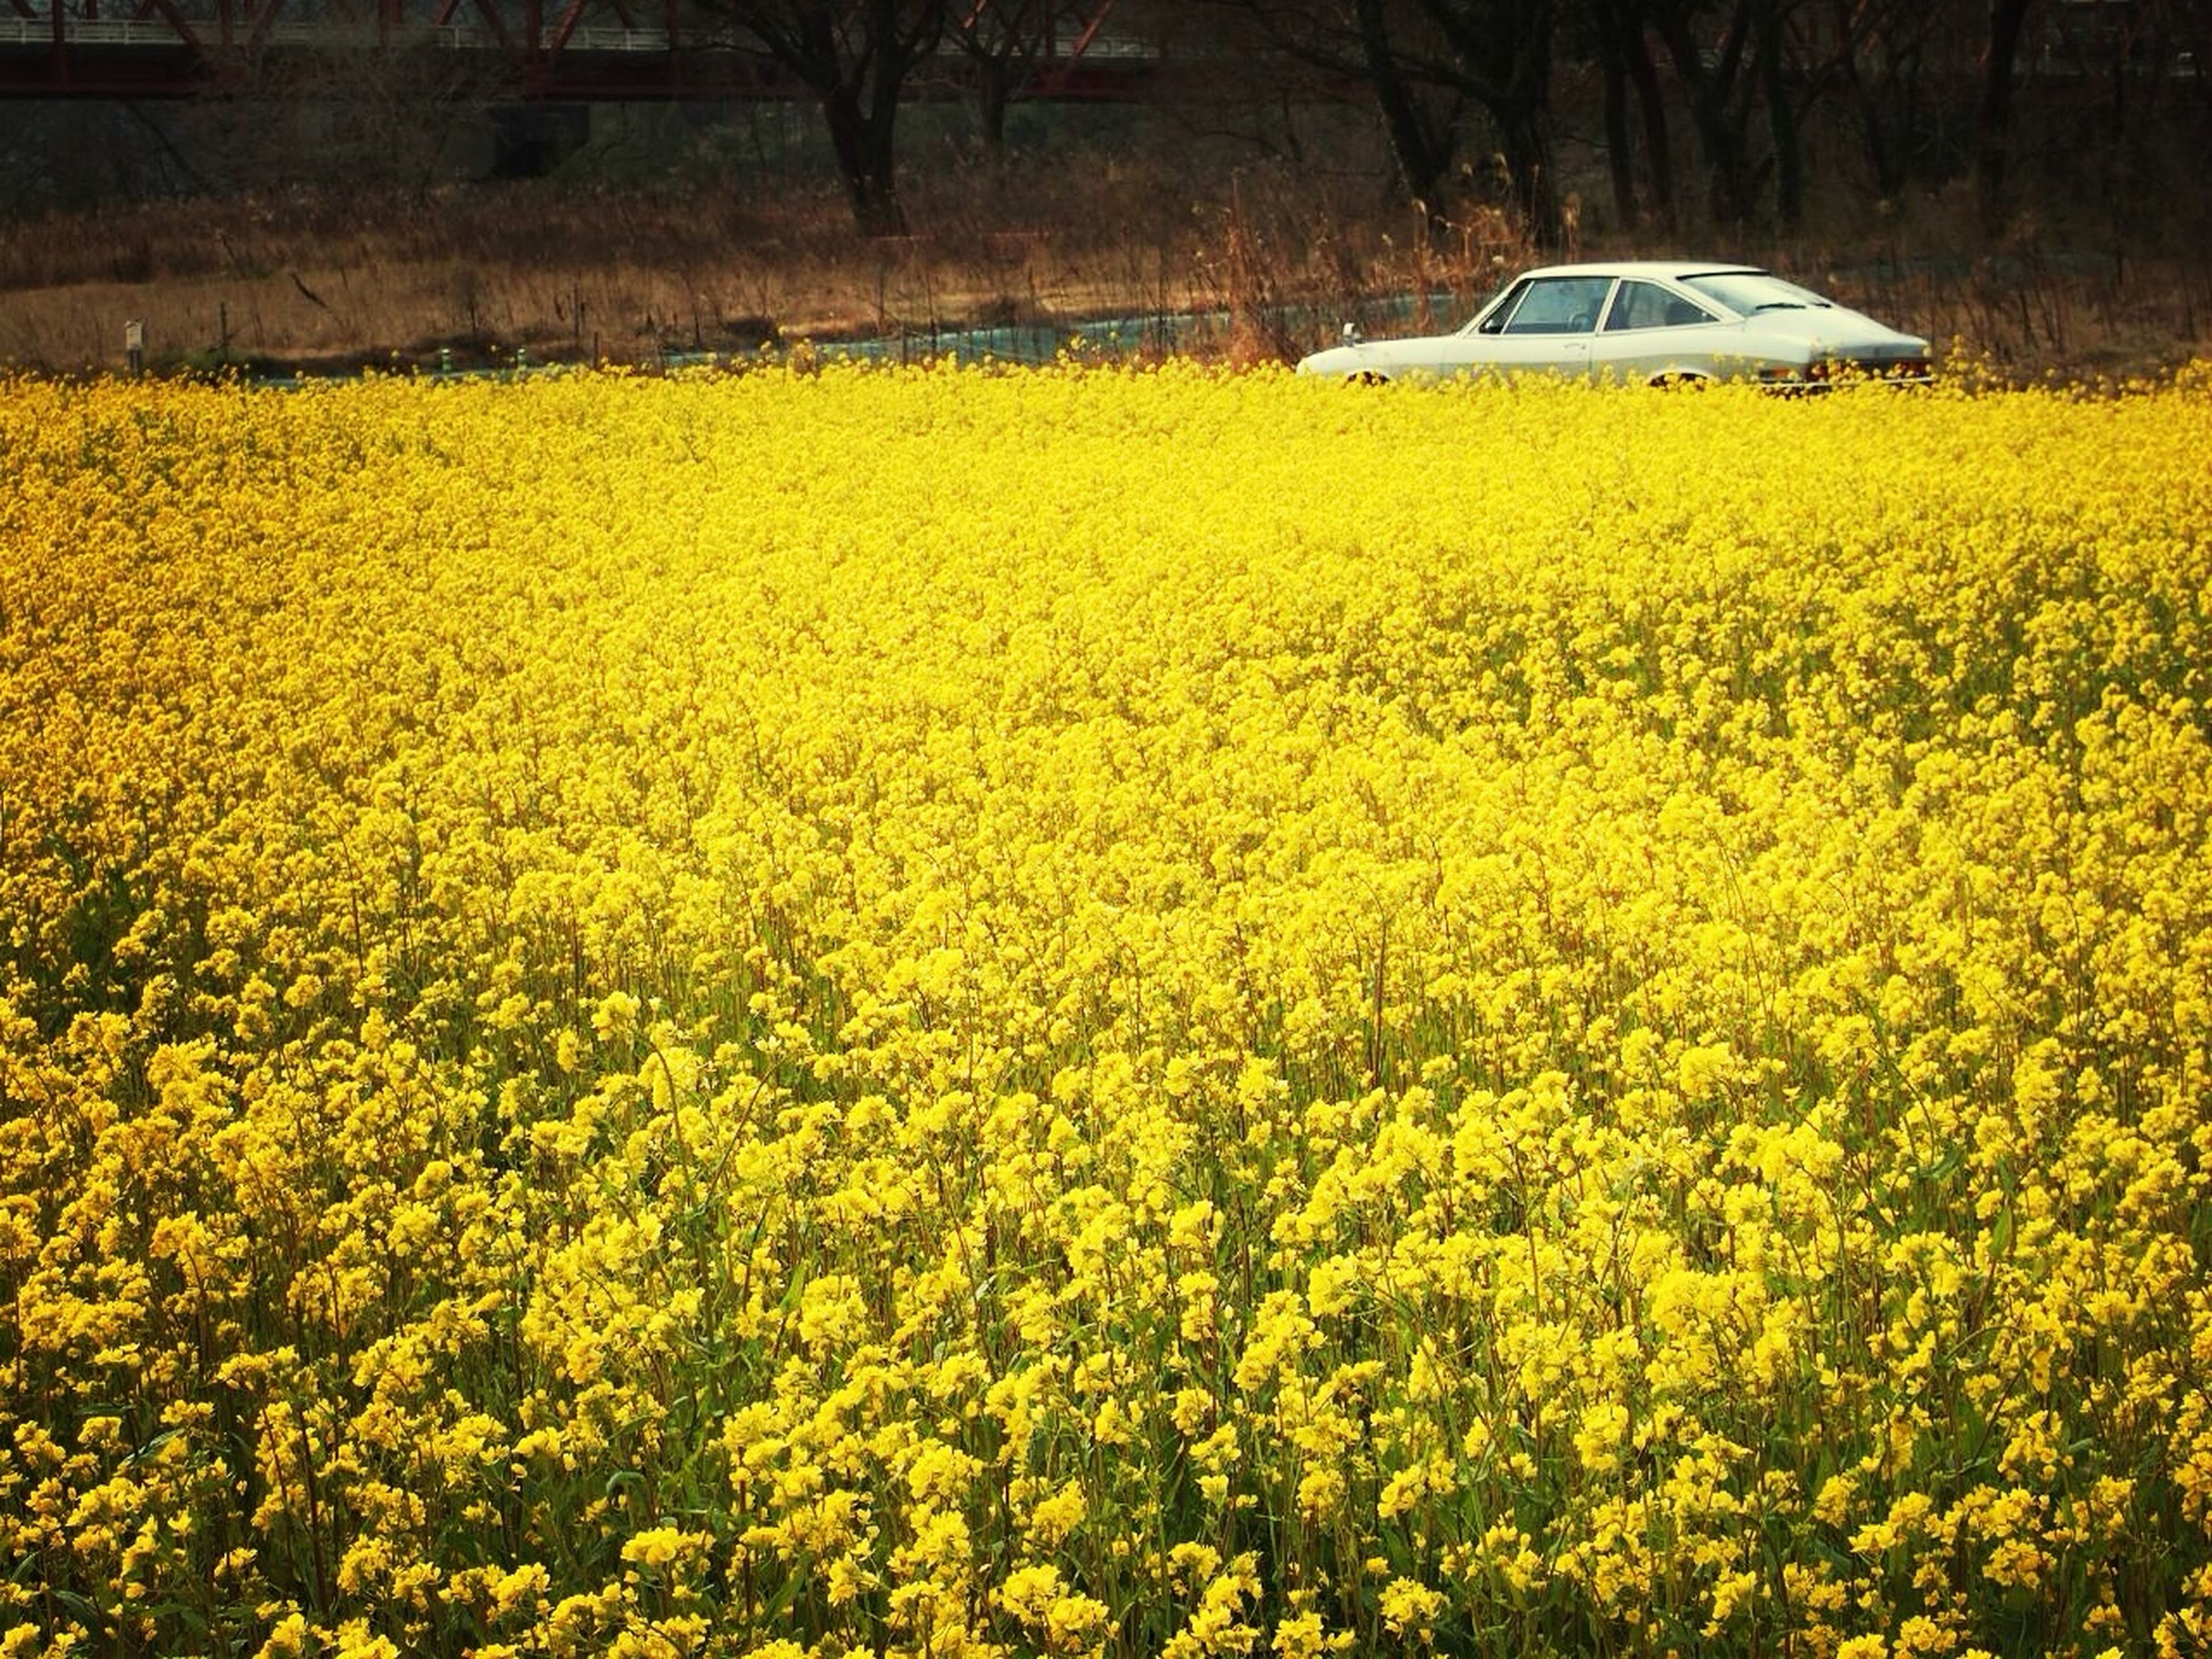 yellow, flower, transportation, growth, field, mode of transport, beauty in nature, nature, rural scene, agriculture, land vehicle, plant, abundance, car, freshness, outdoors, farm, landscape, no people, tranquility